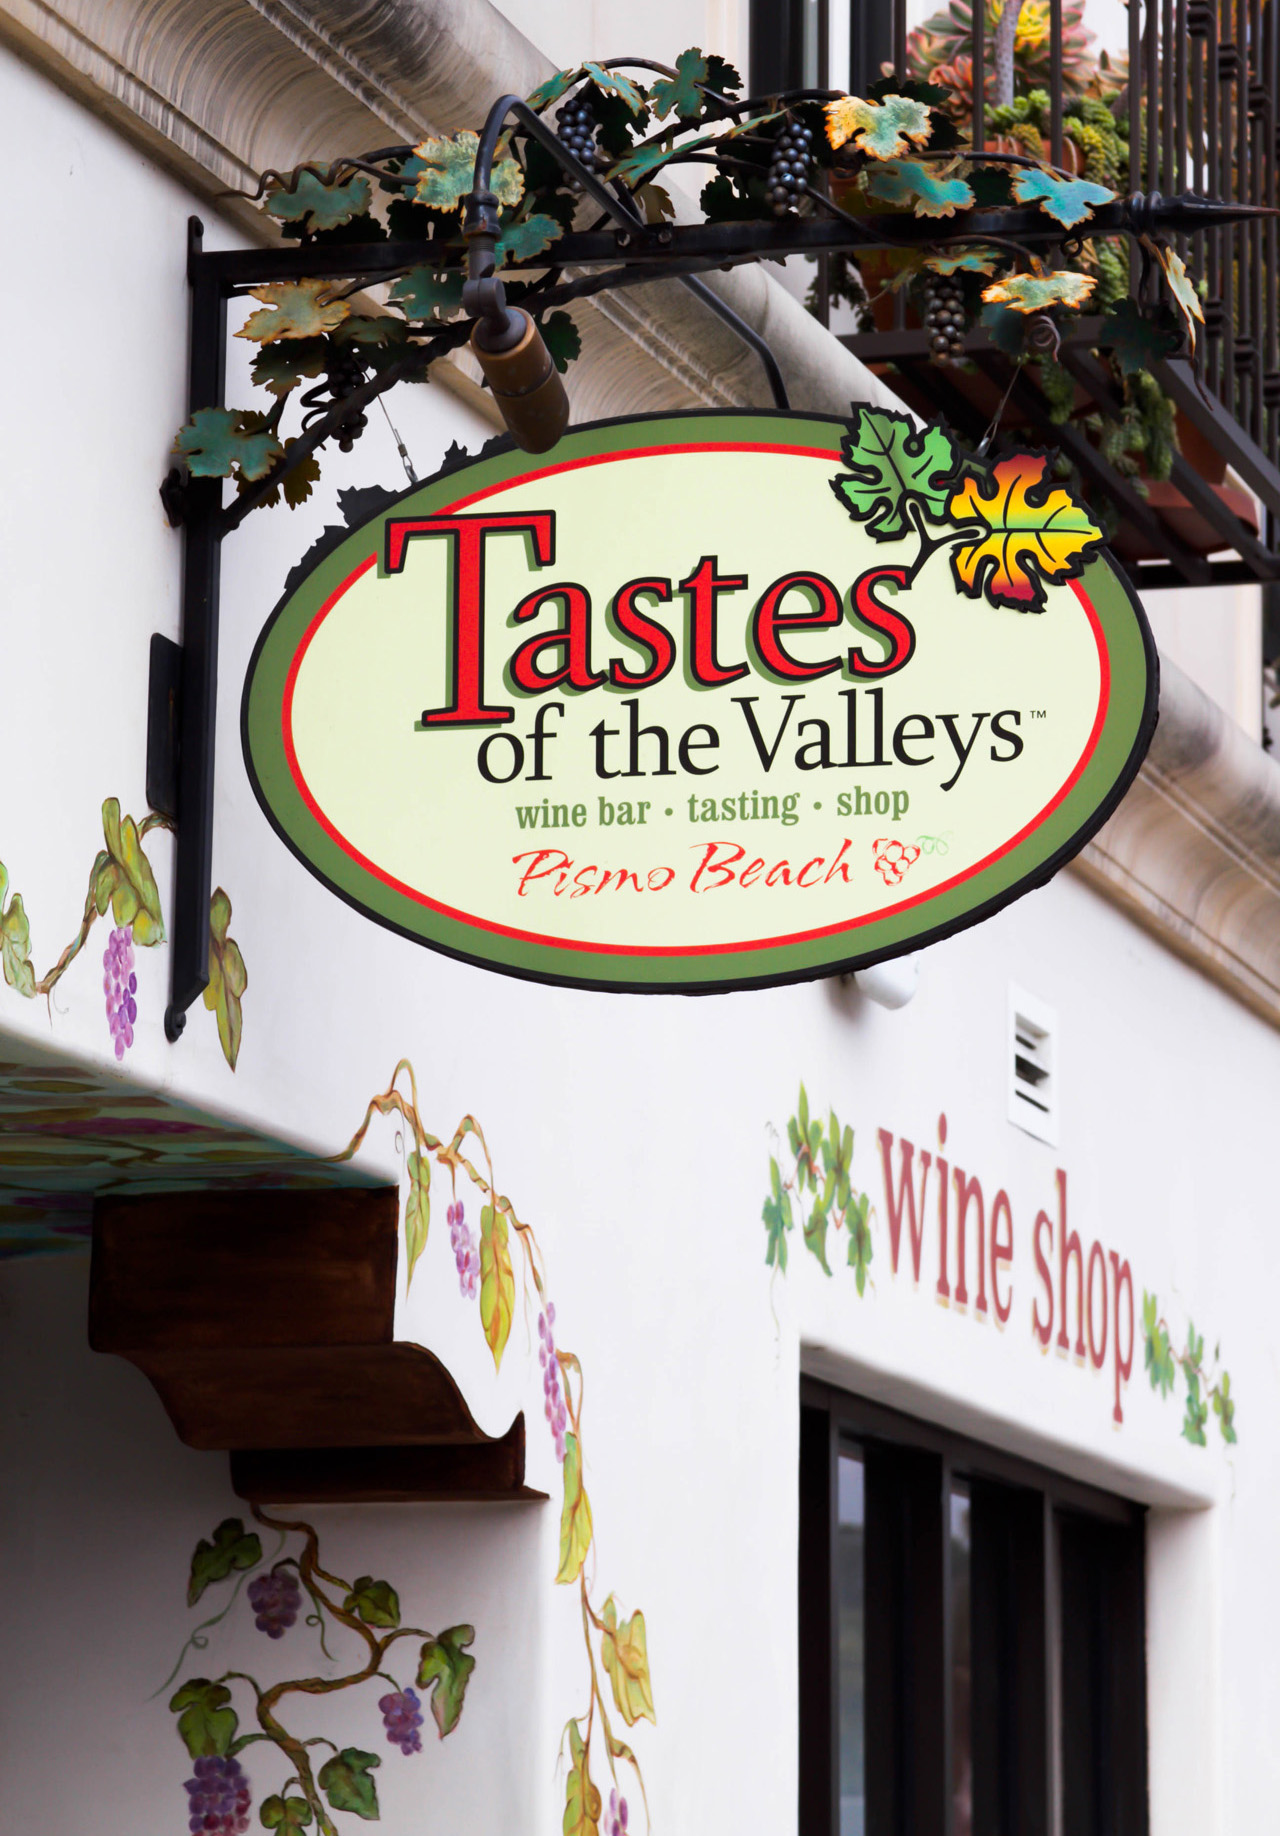 Tastes of the Valleys